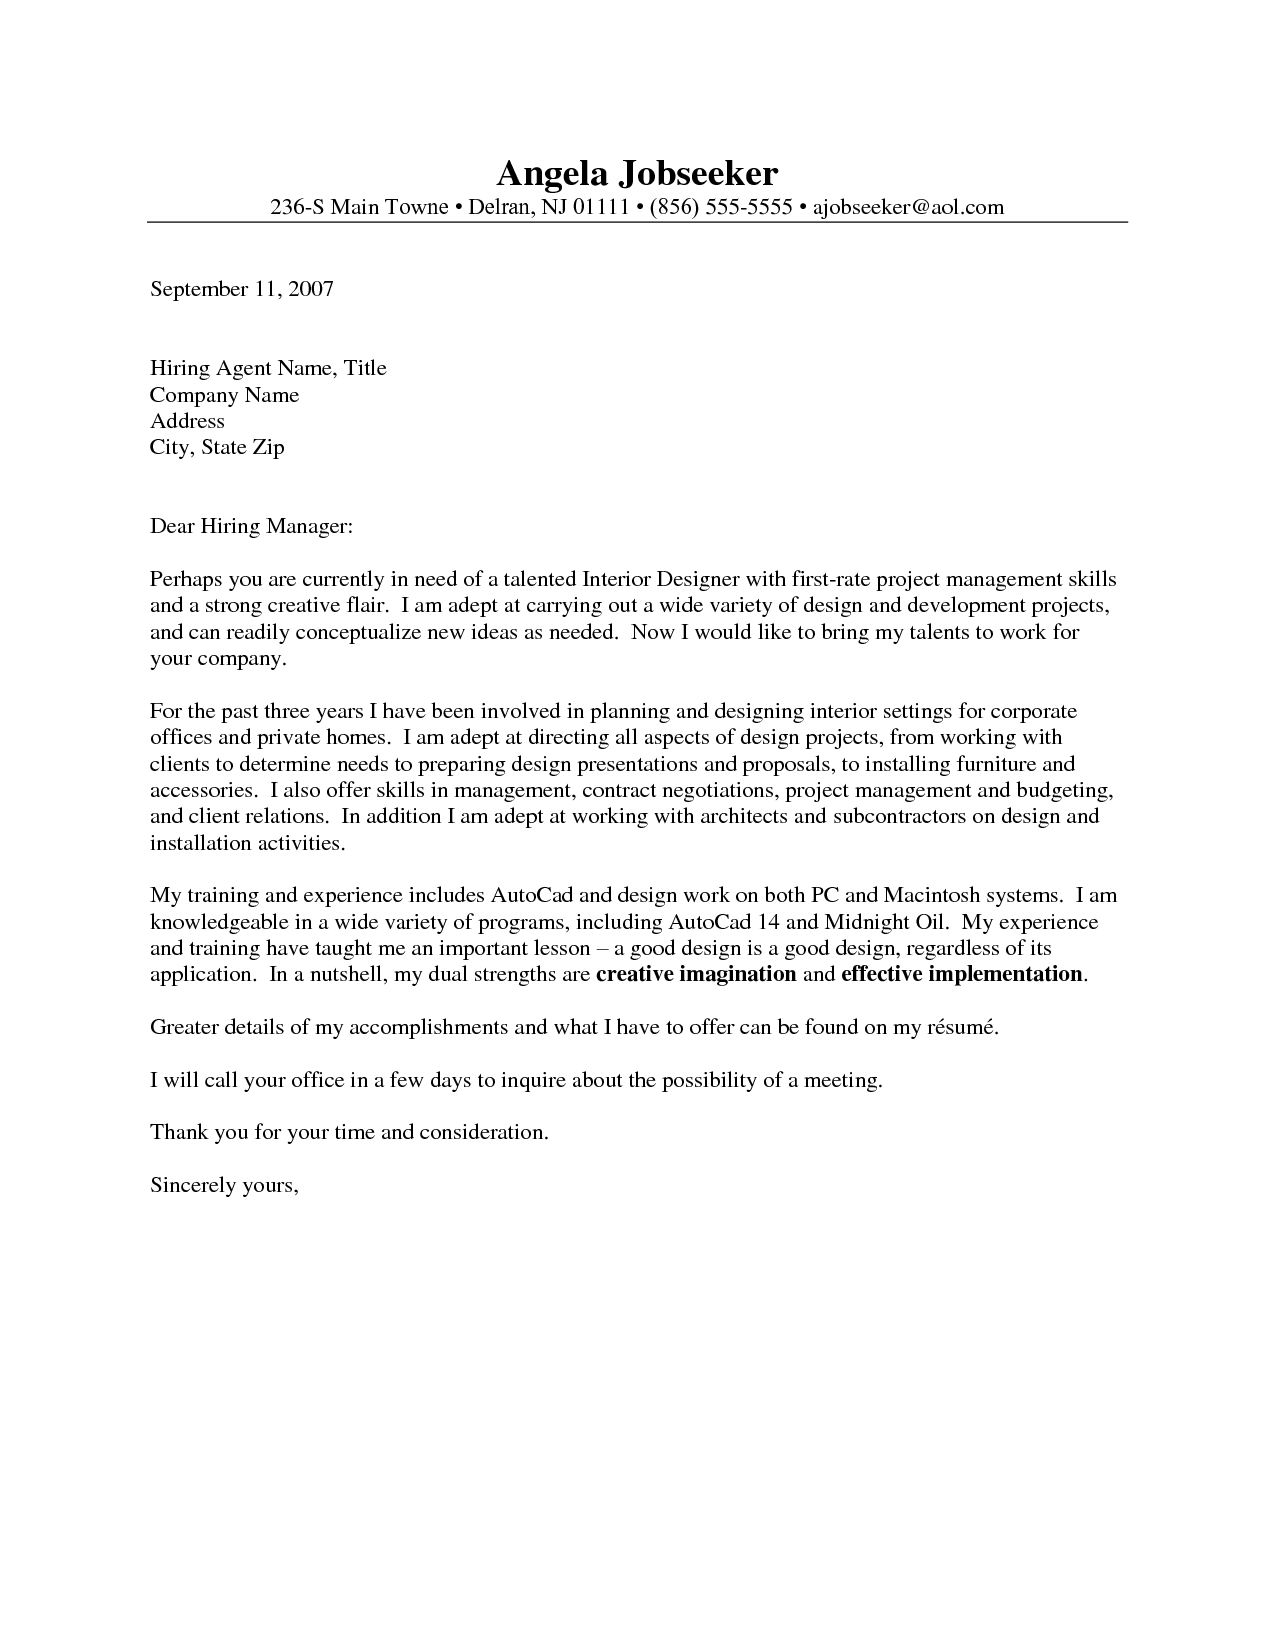 Prayer Letter Template Download - Outstanding Cover Letter Examples